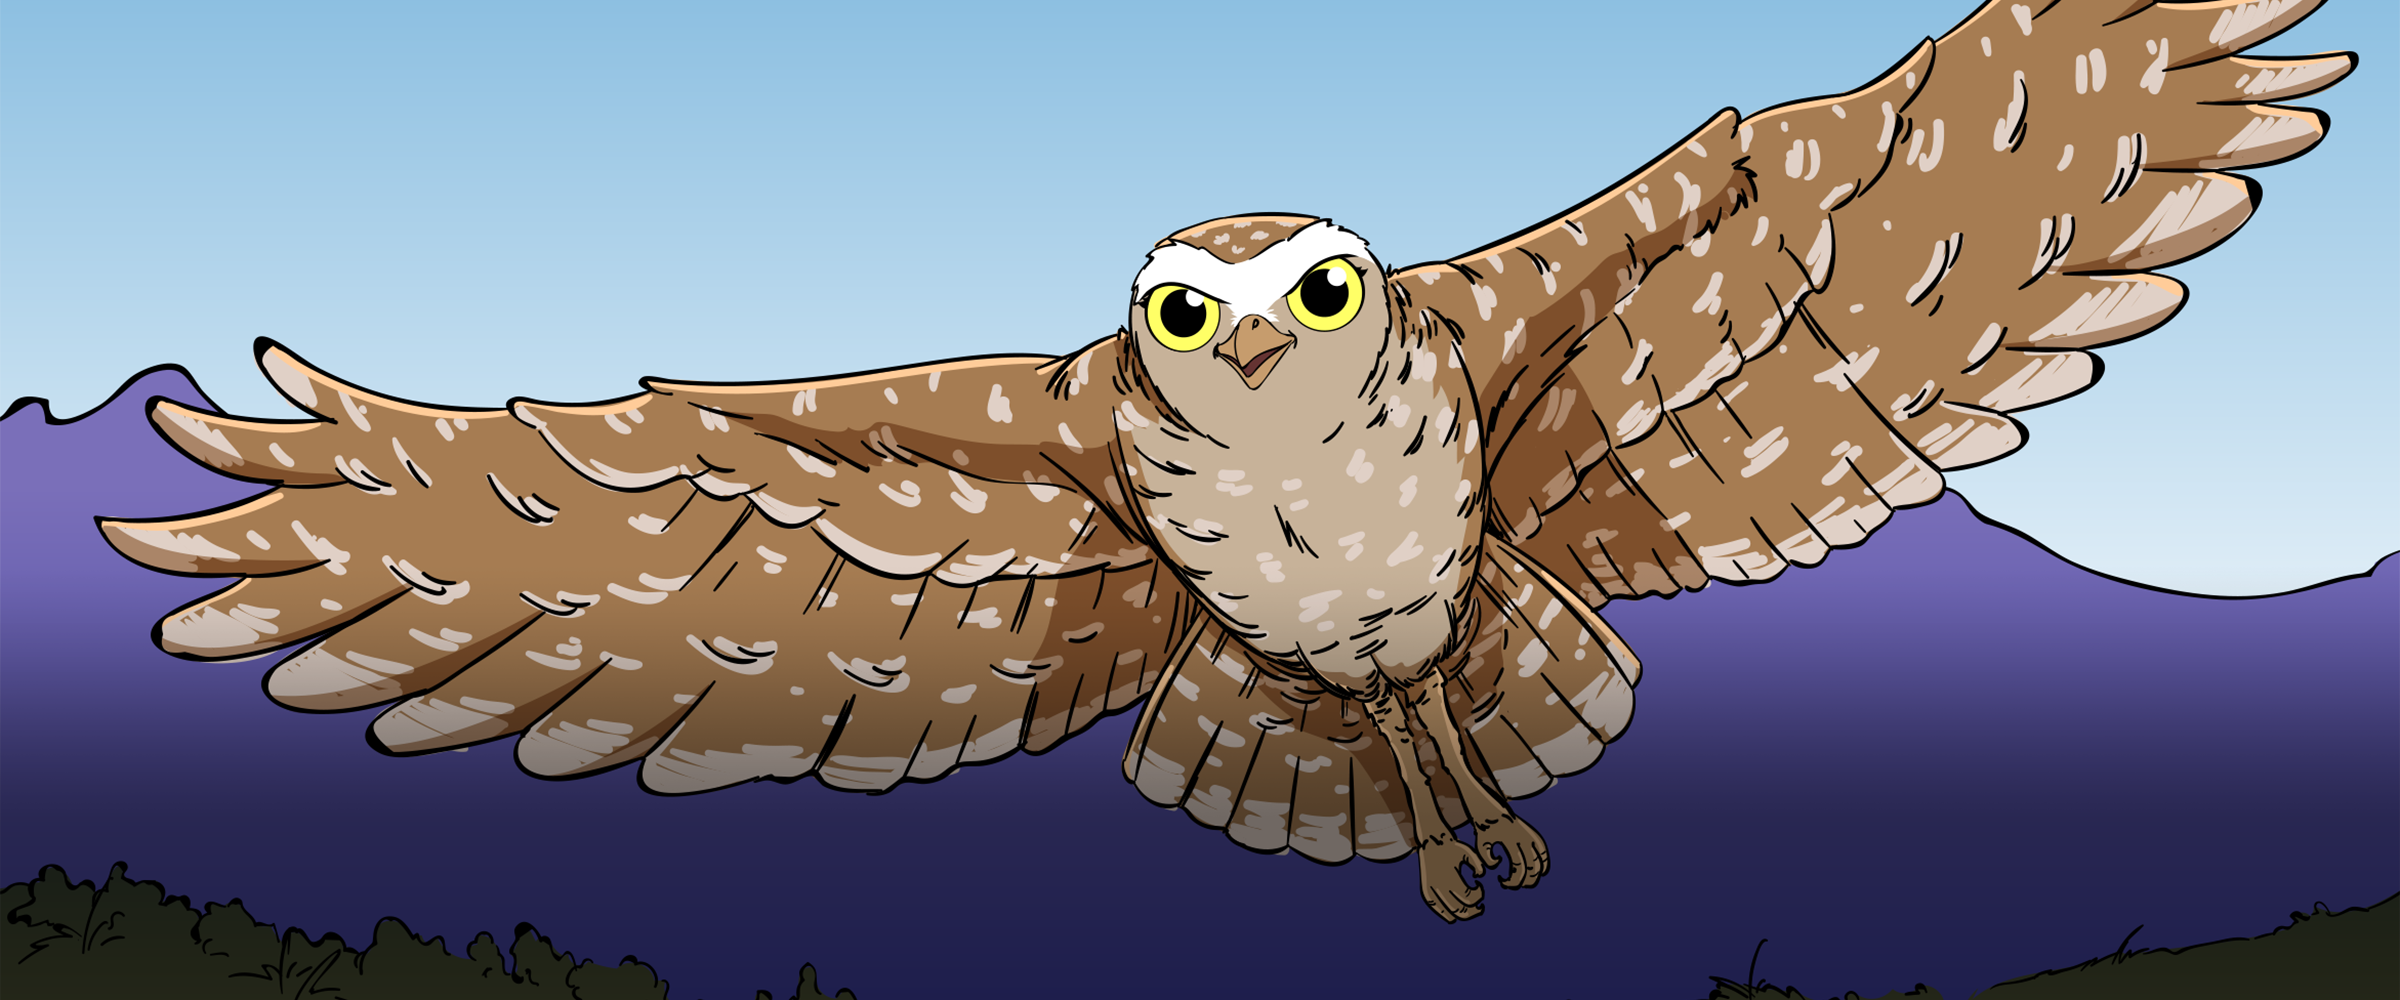 An illustration of a Burrowing Owl in flight.